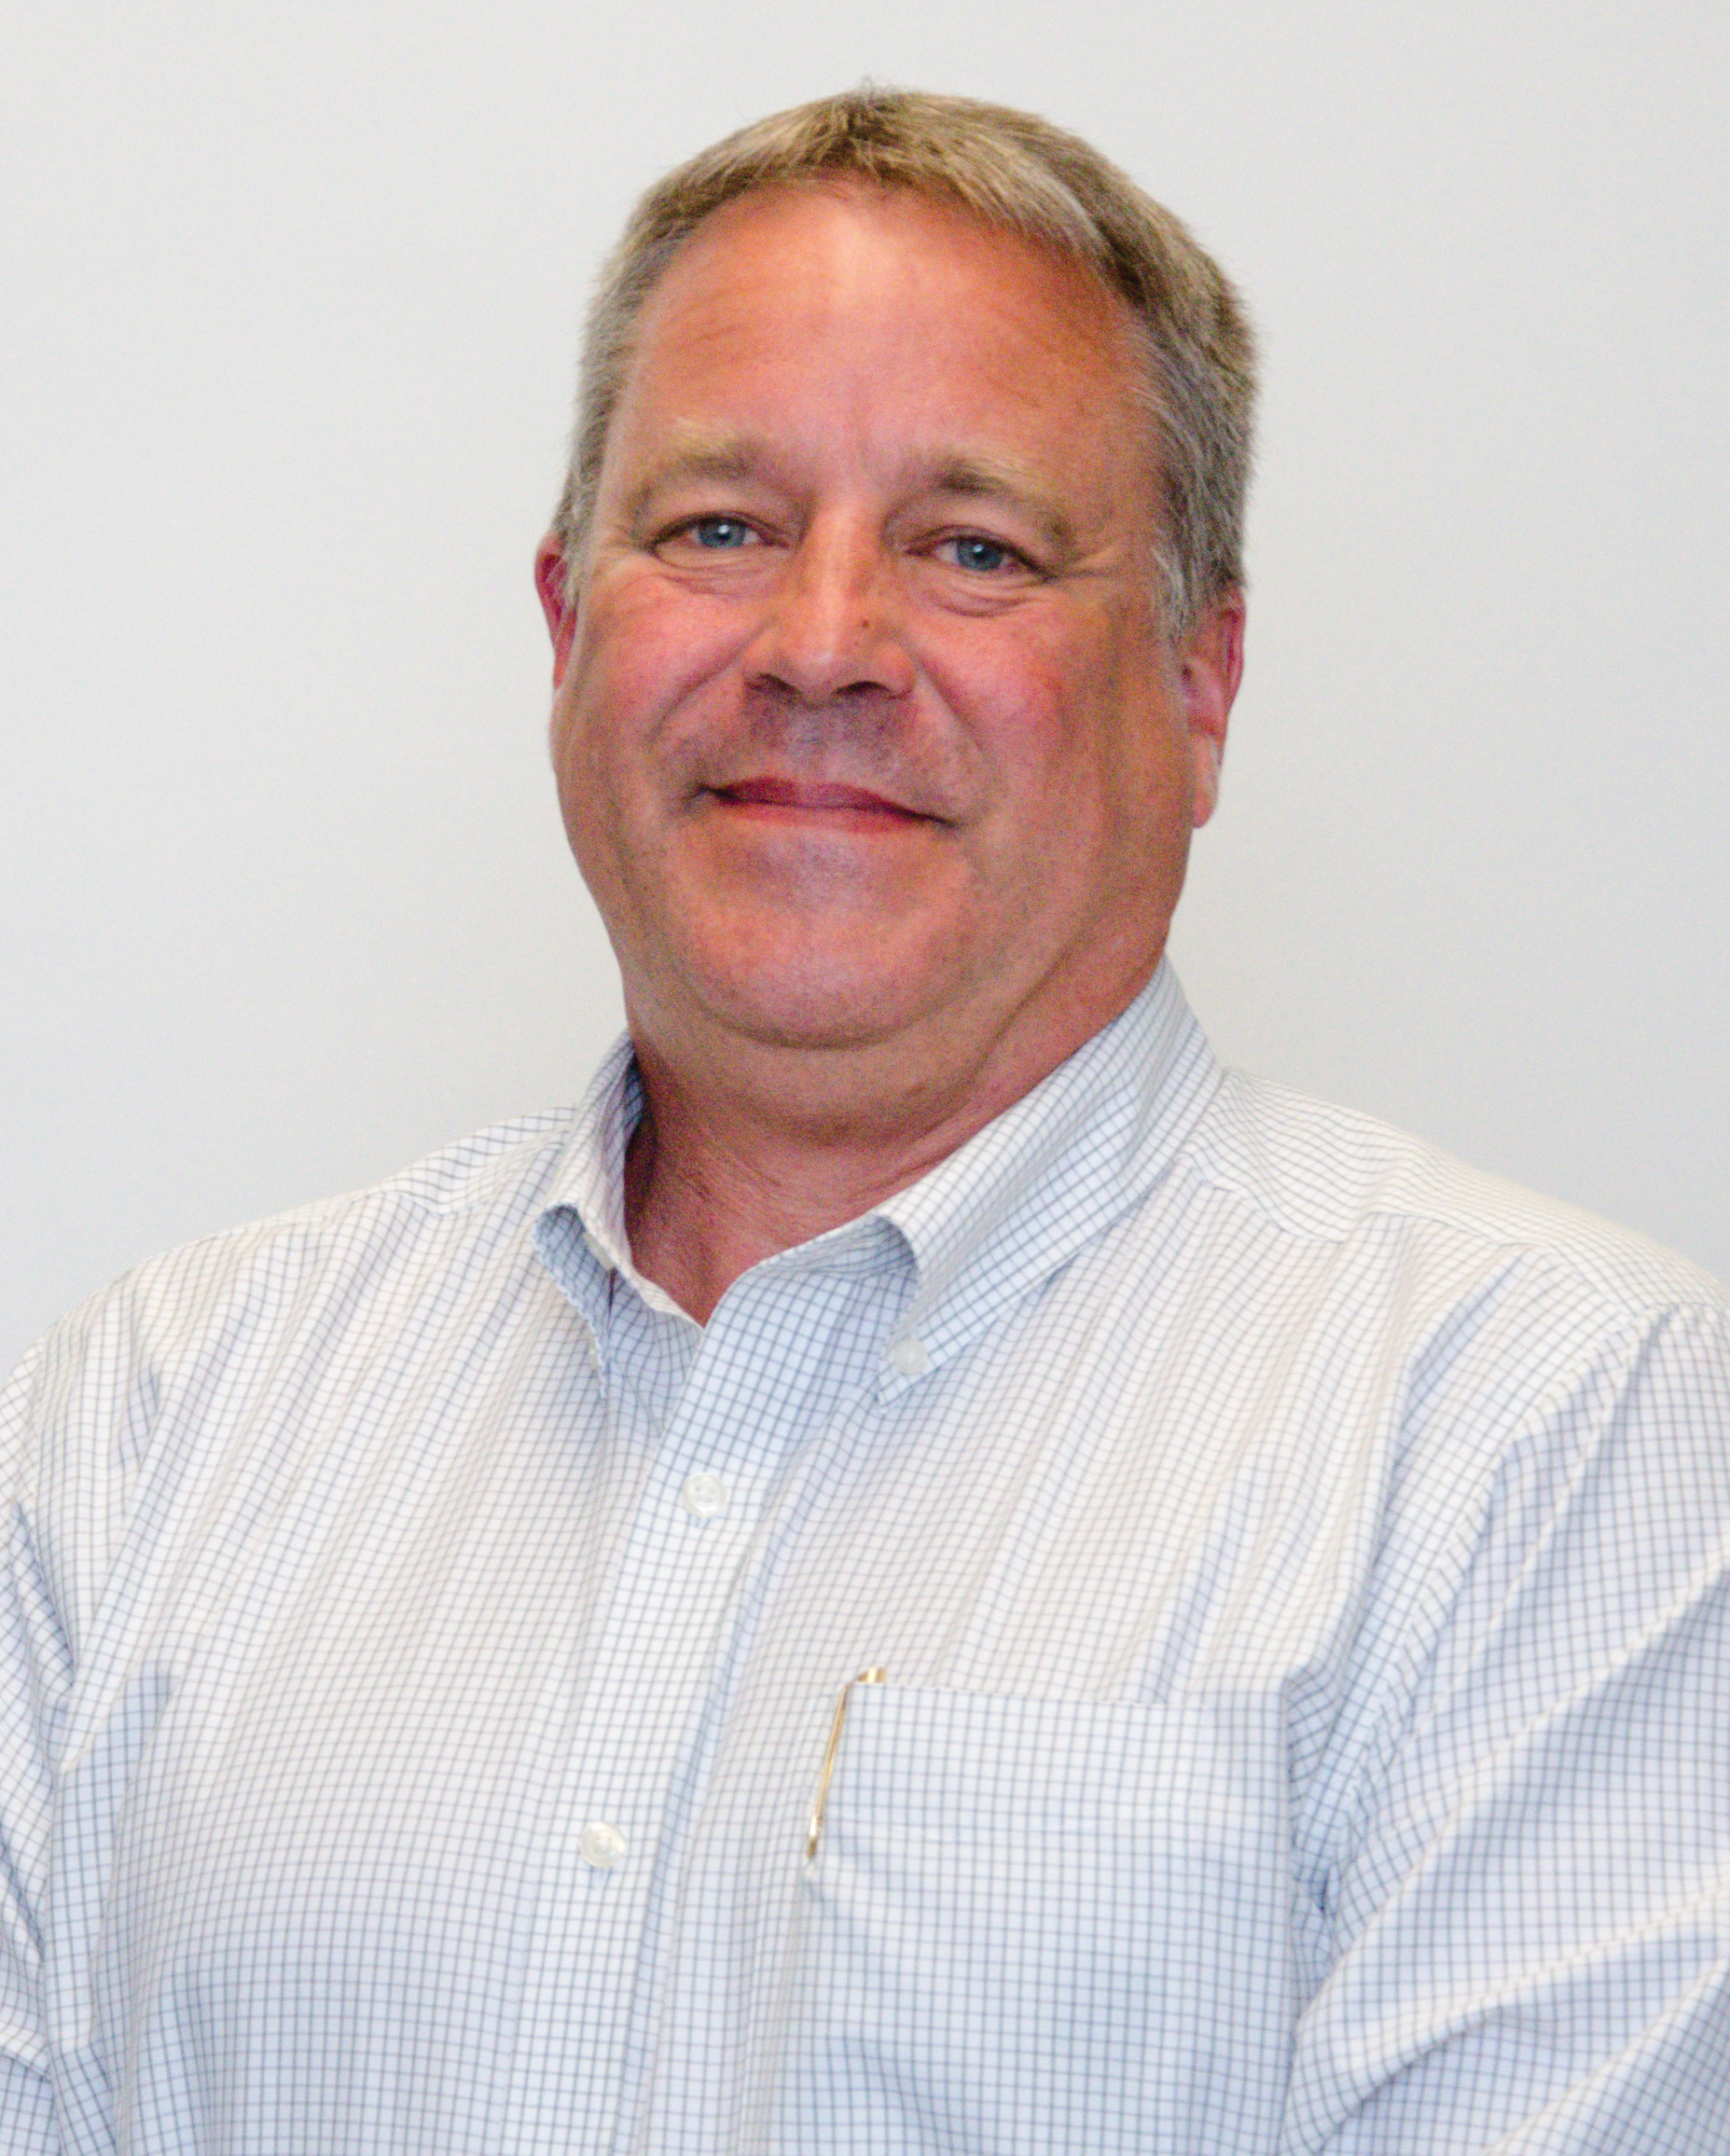 Mark McNeely